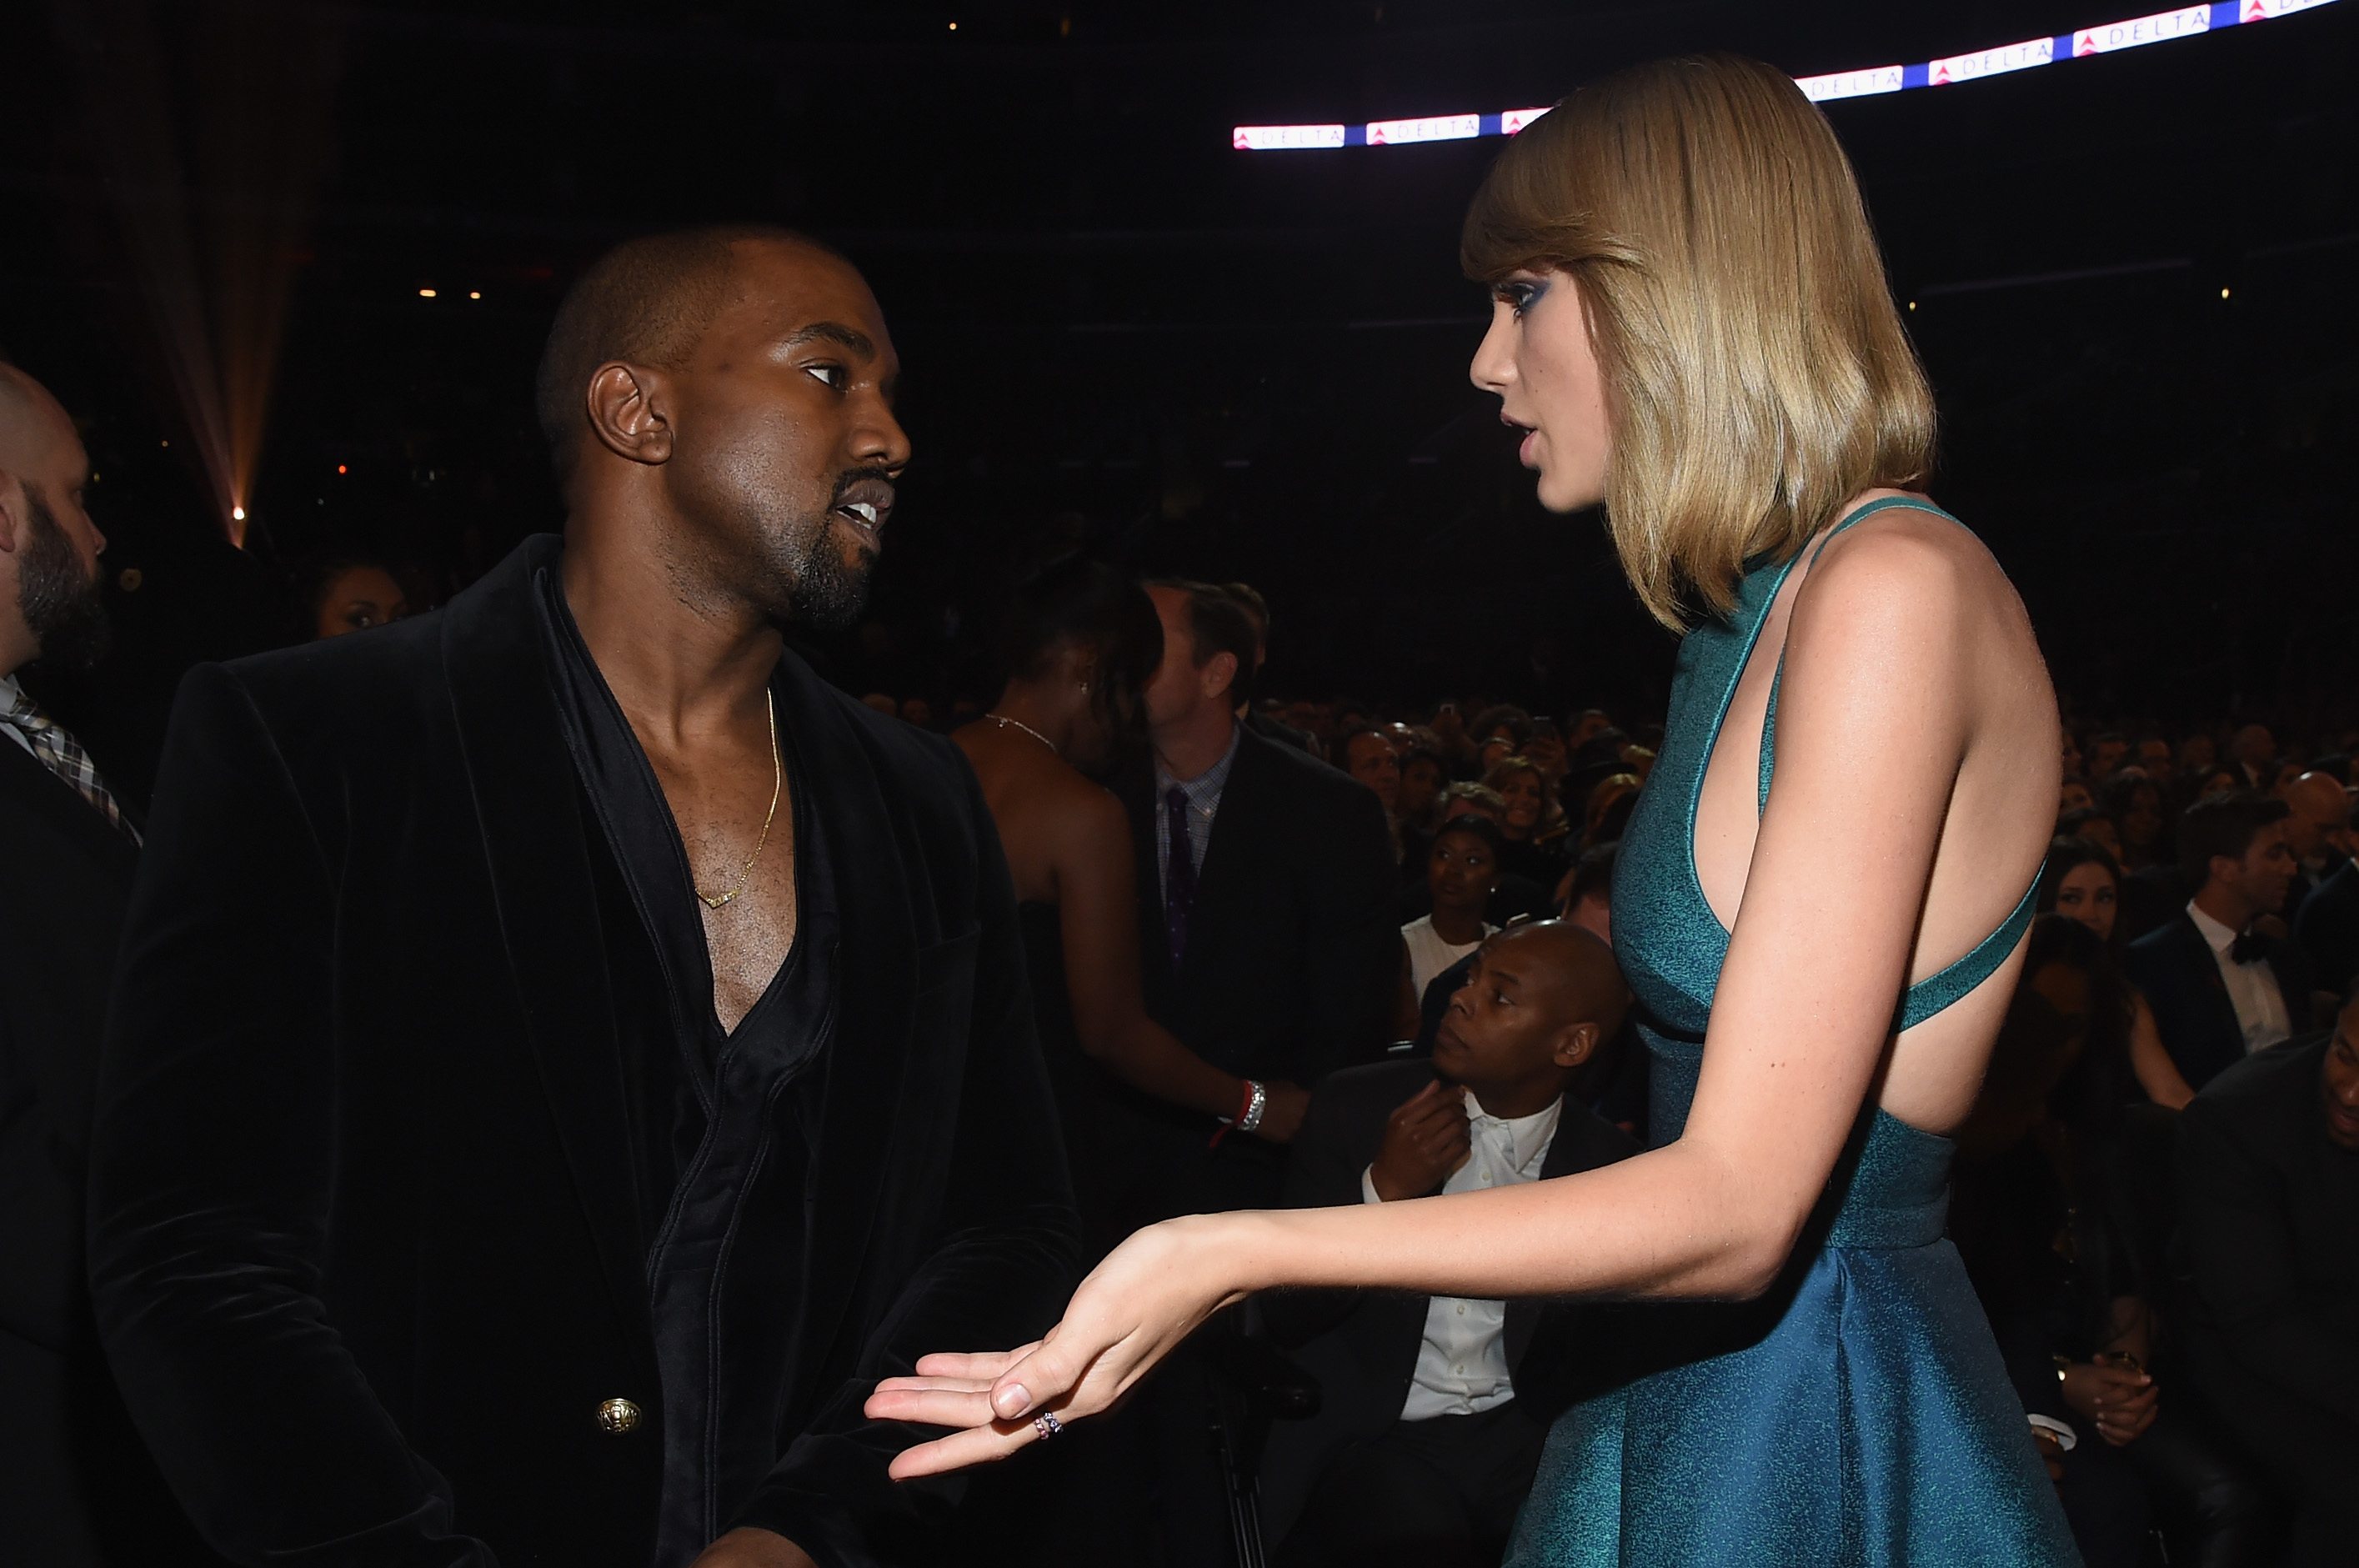 The Kanye West Taylor Swift Feud Has Just Got A Whole Lot Worse GettyImages 463036374